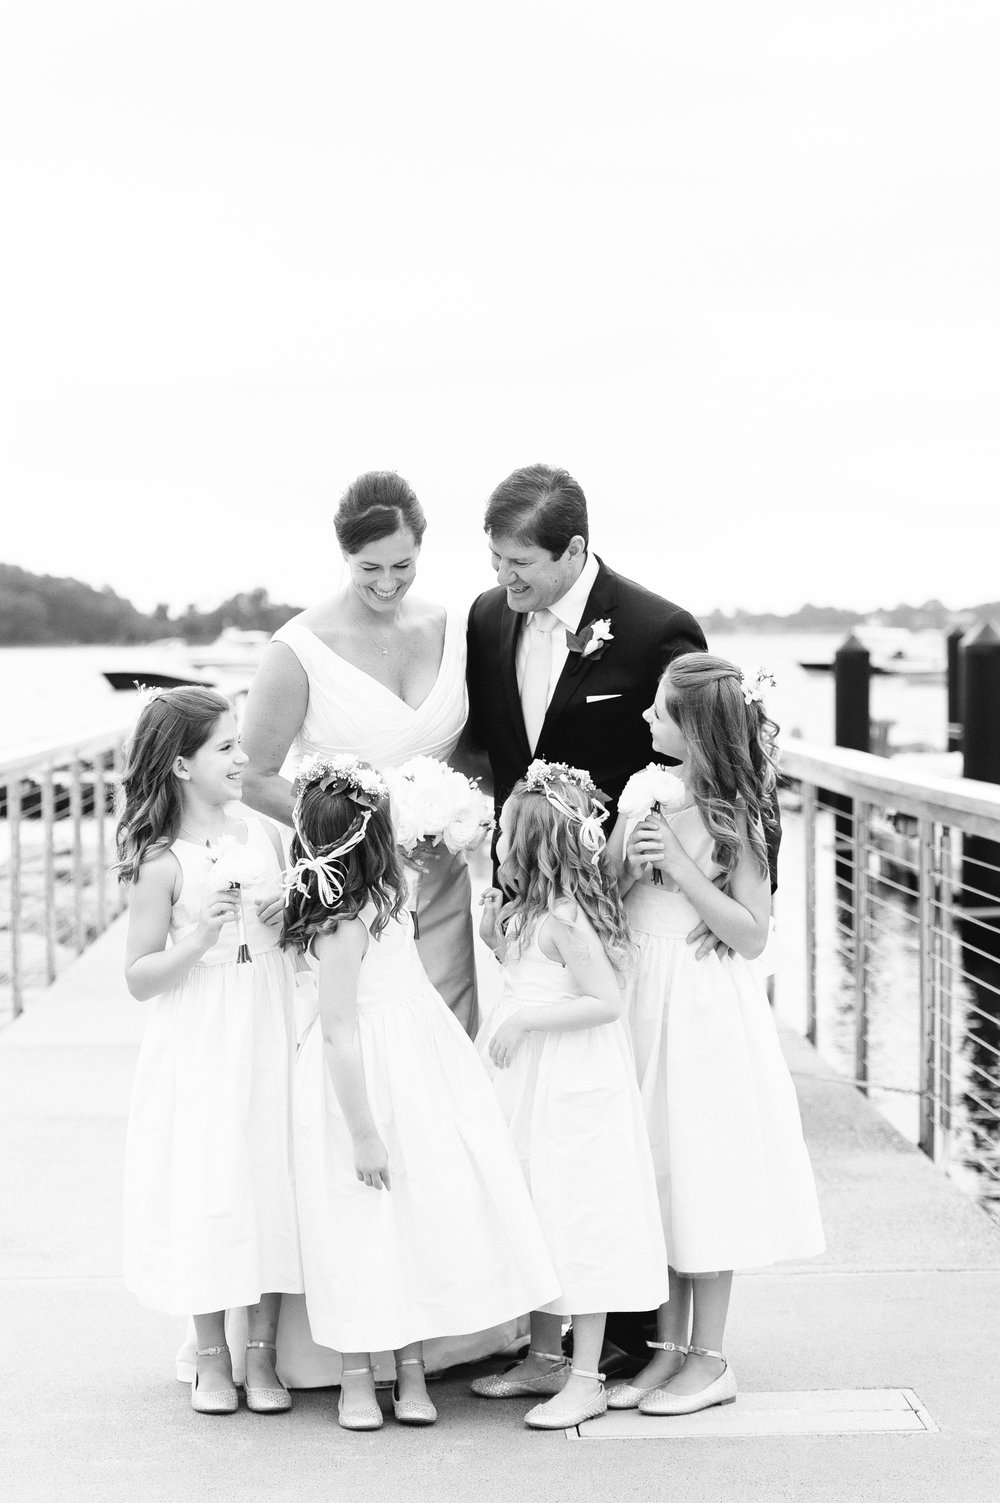 Bride and Groom in Augusta Jones dress with four little flower girls in white jcrew dresses pose on docks at Belle Haven Club for fall nautical inspired wedding